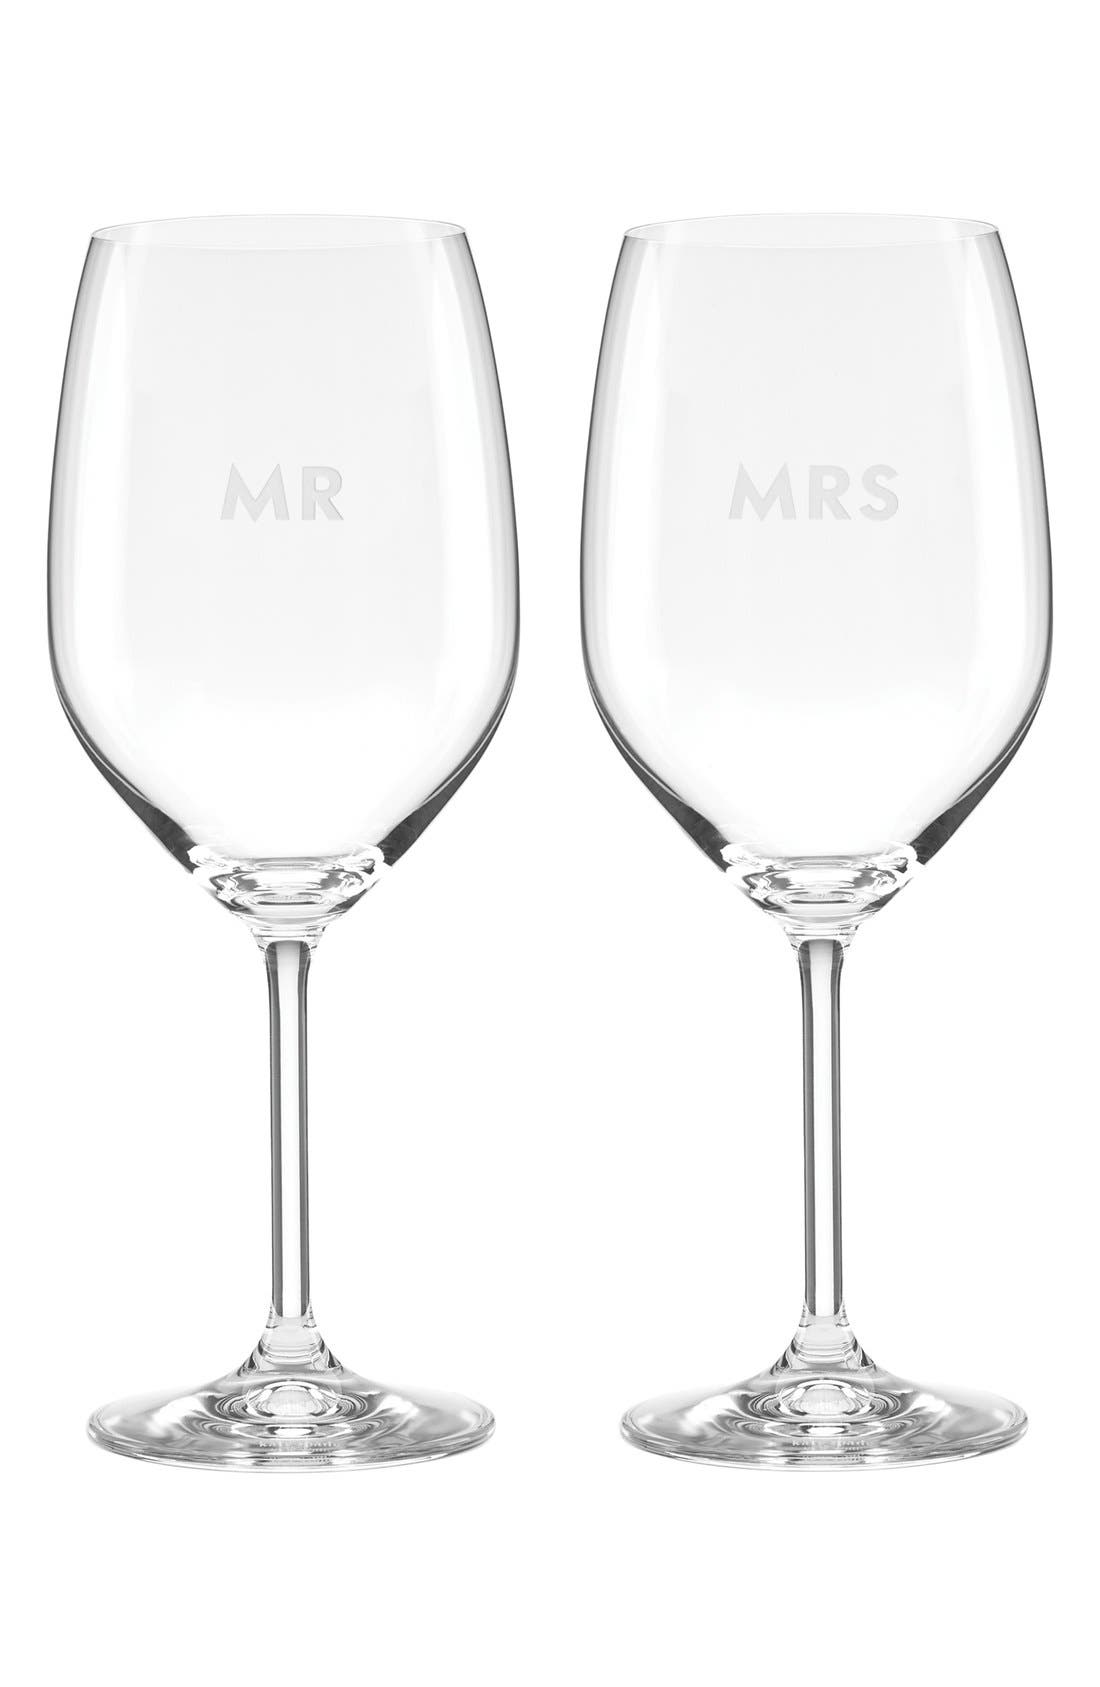 Main Image - kate spade new york darling point - mr & mrs set of 2 wine glasses